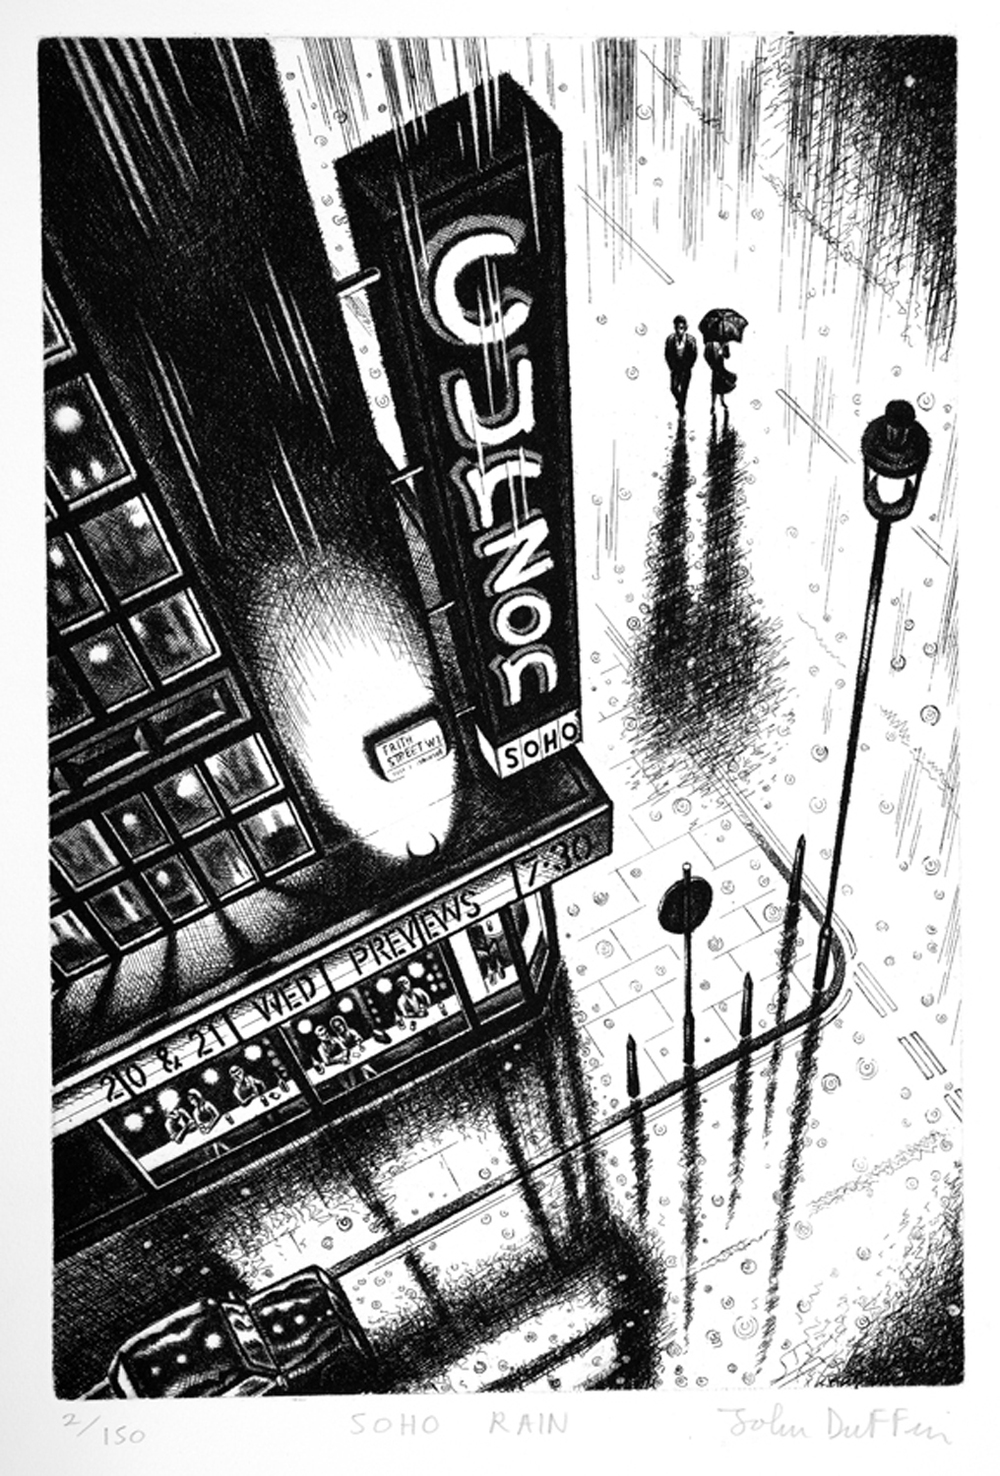 Soho Rain etching